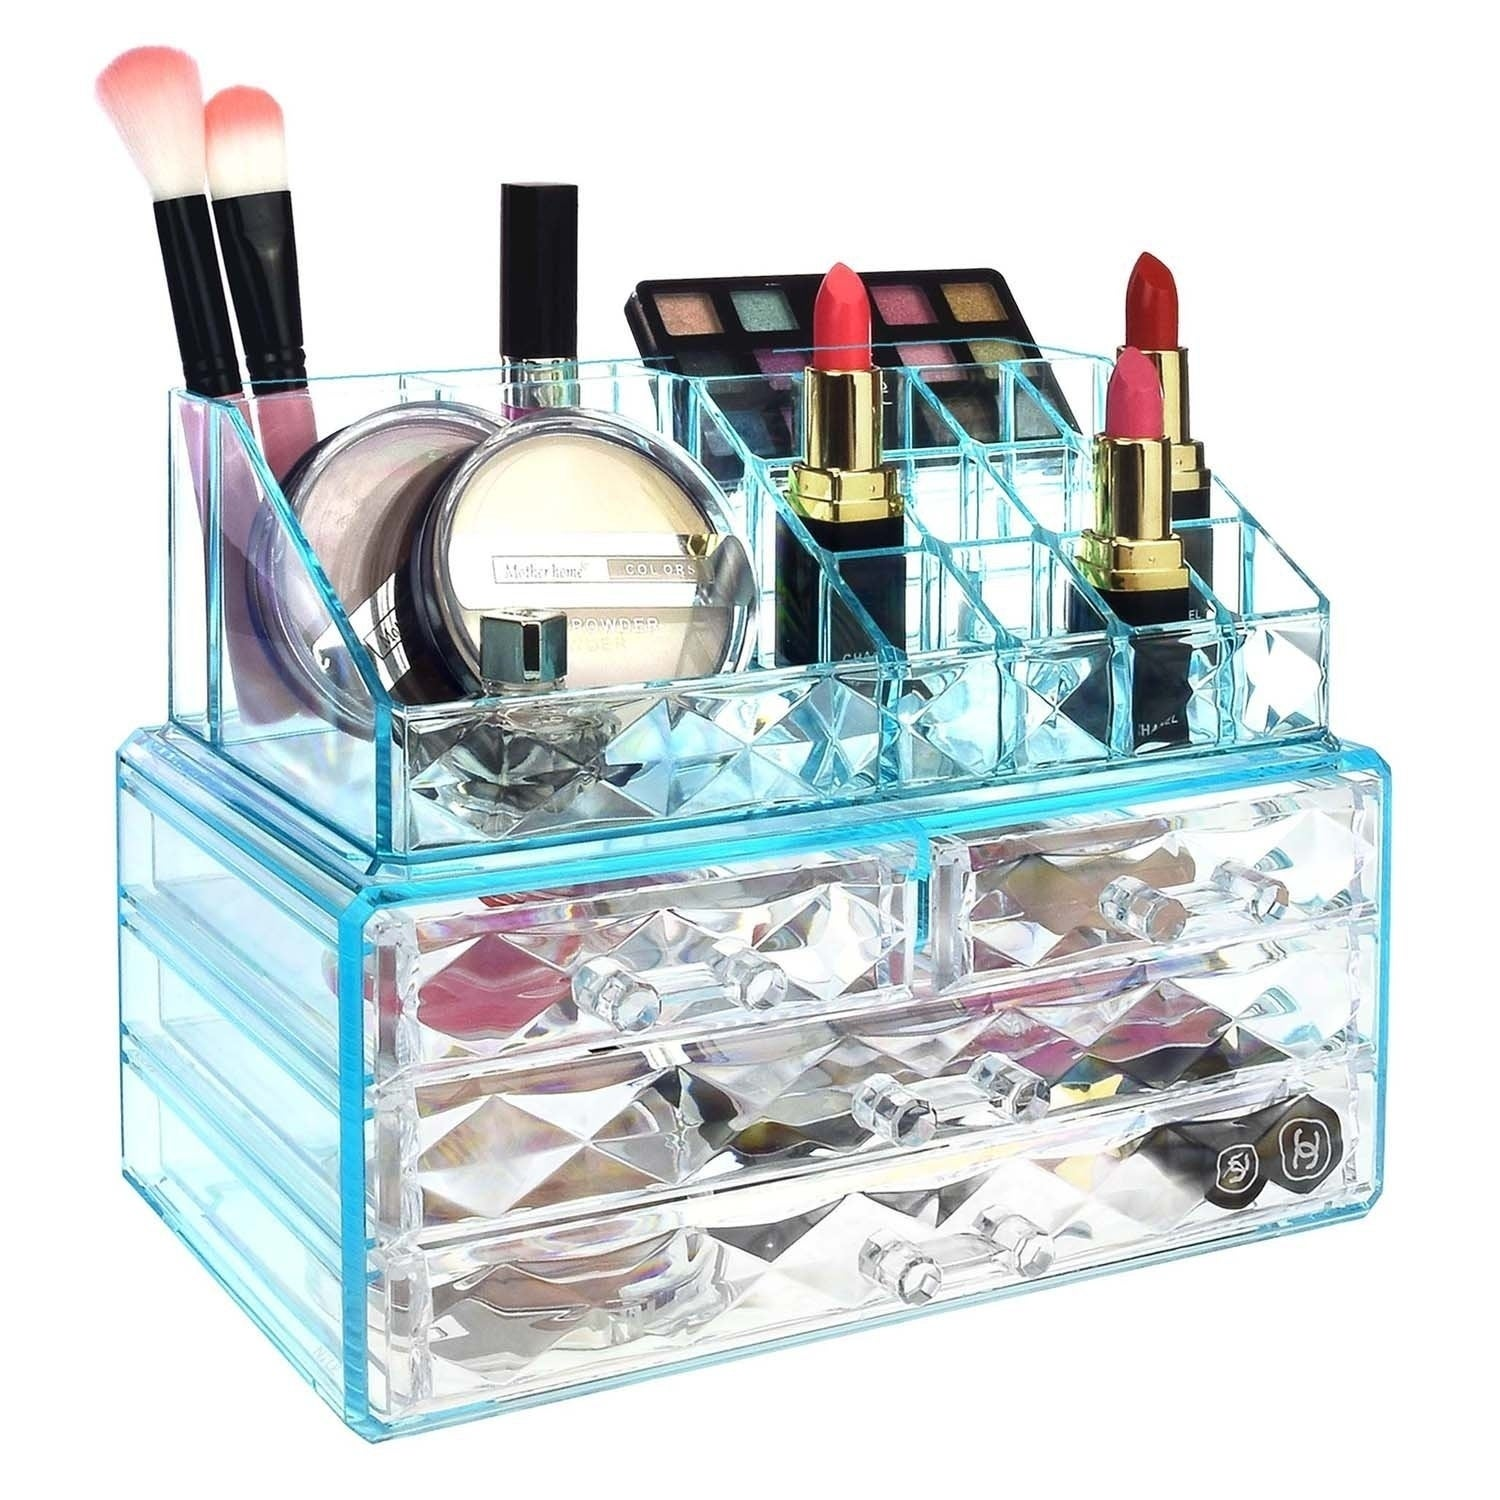 Ikee Design Jewelry And Makeup Organizer Two Pieces Set, Blue